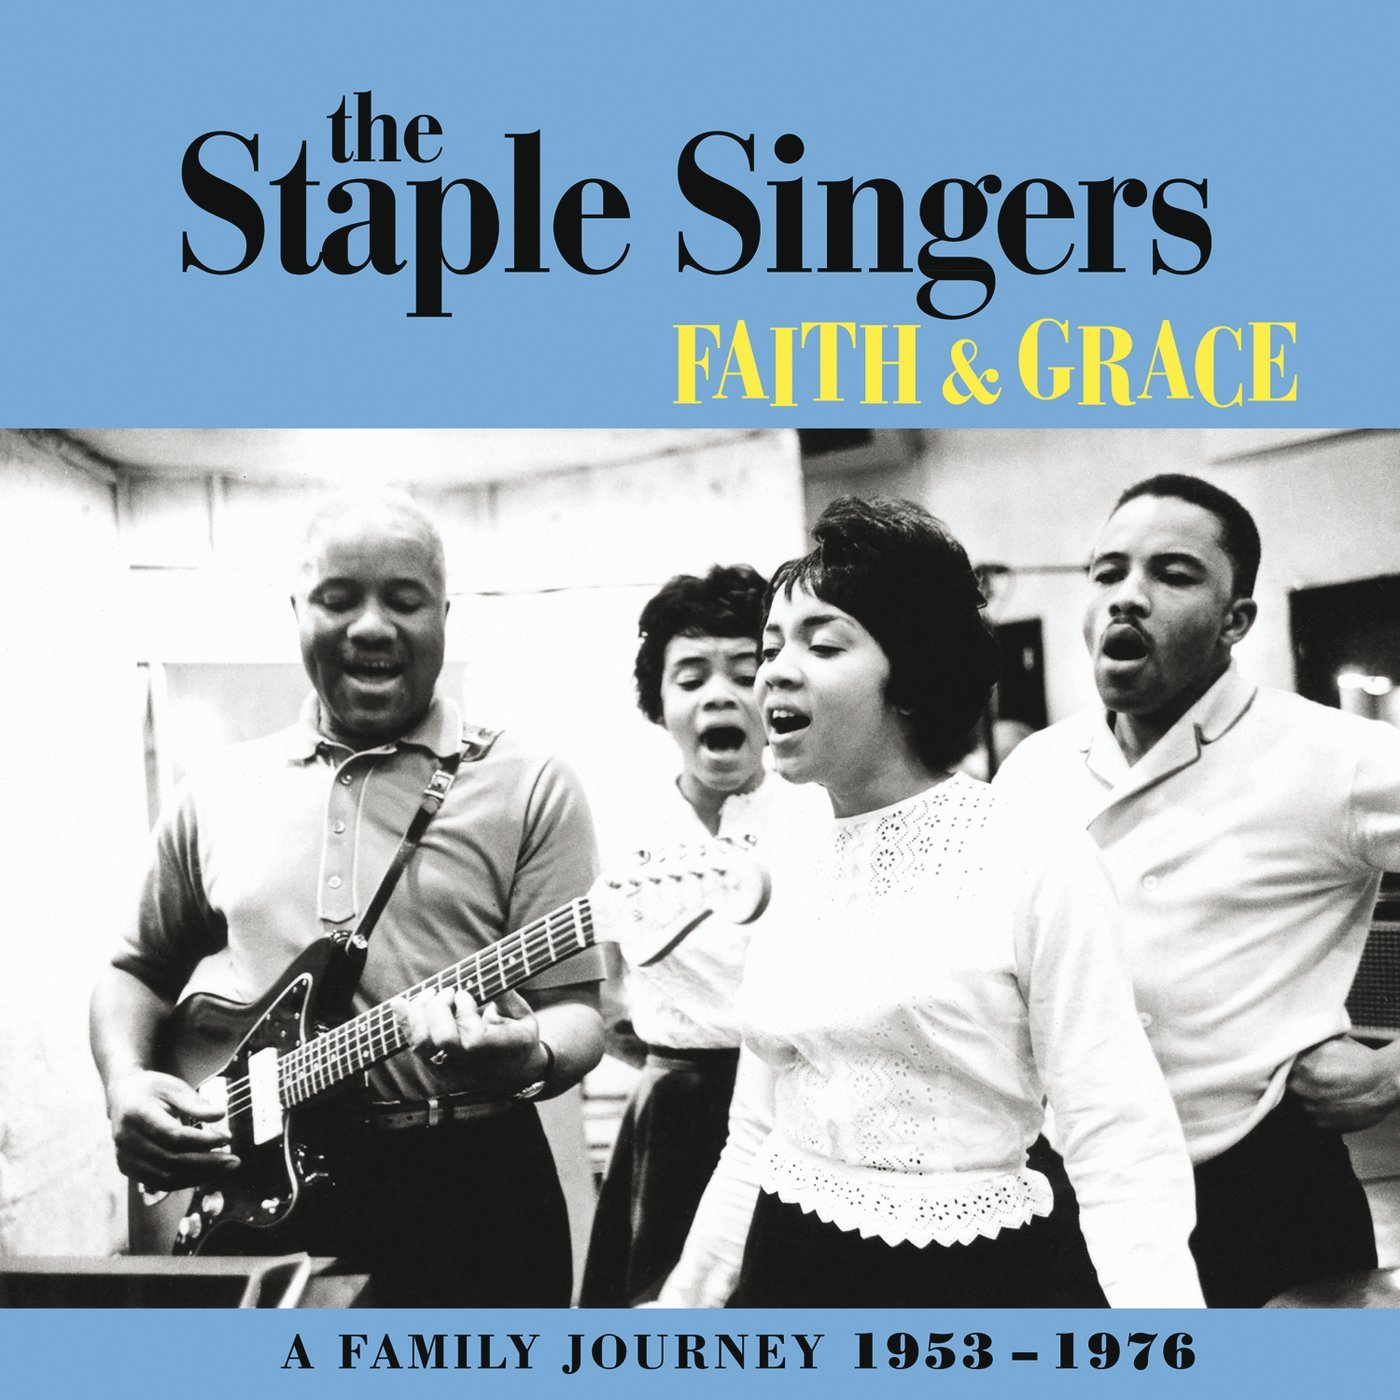 The Staple Singers: Faith & Grace